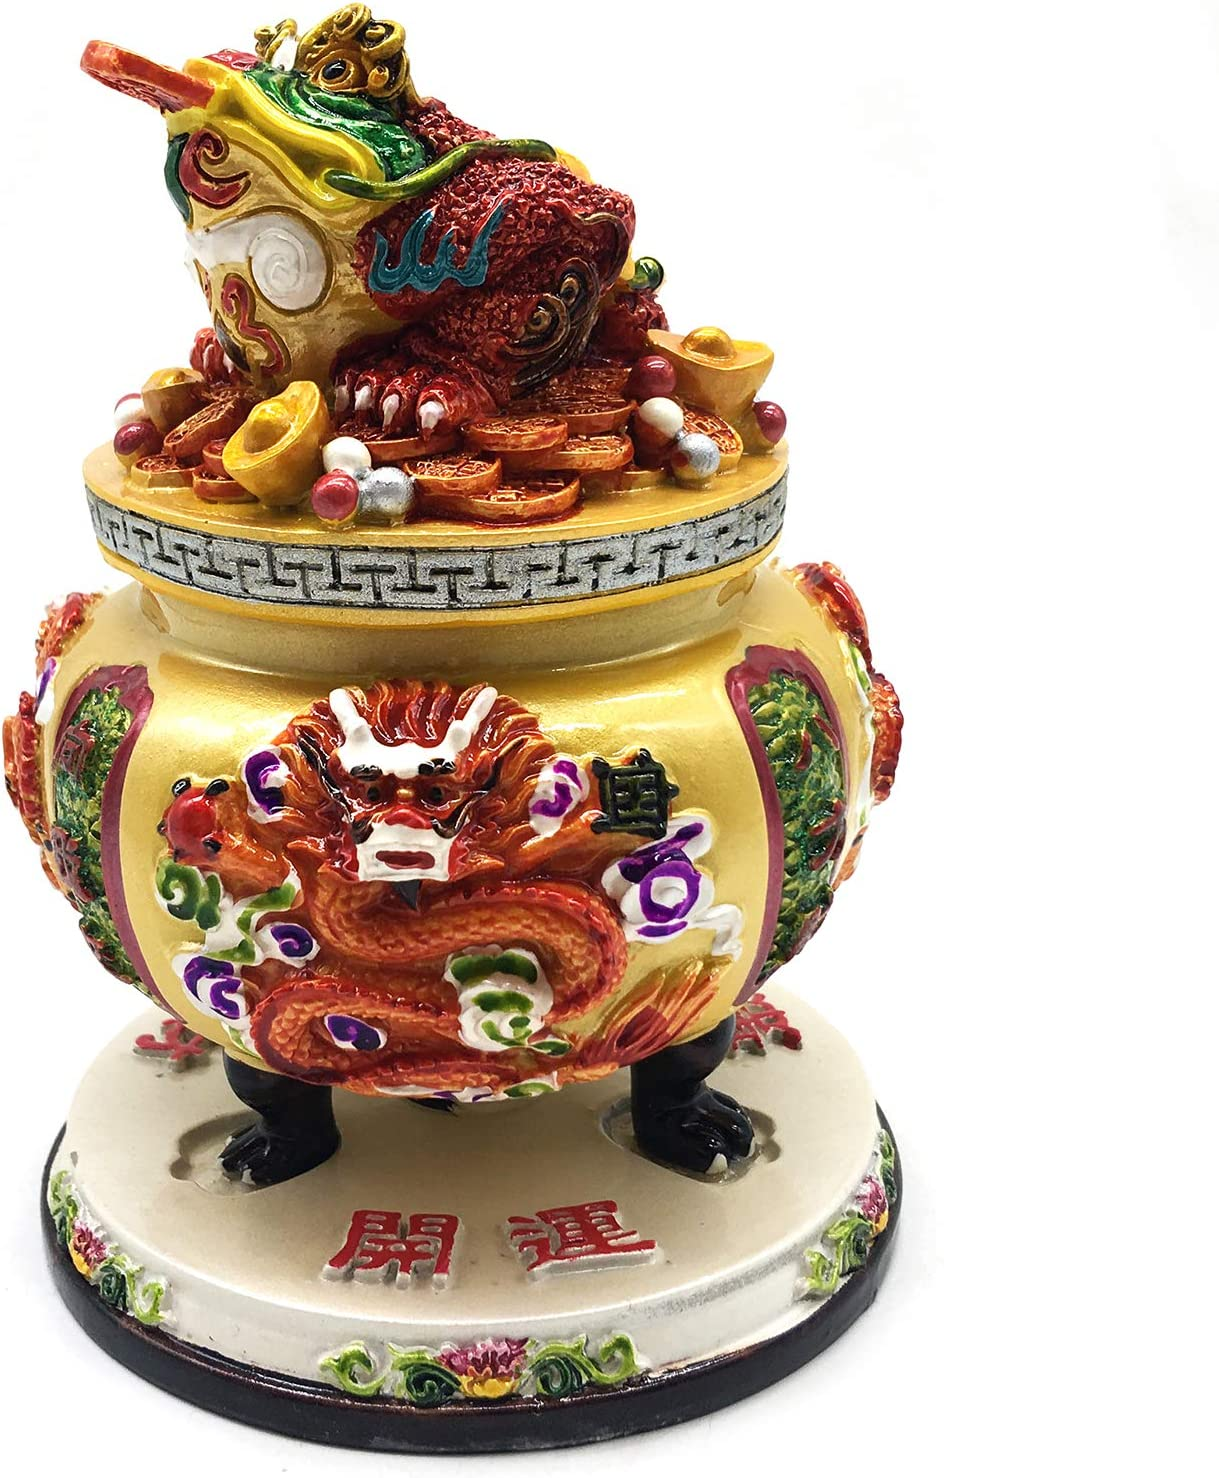 better us Chinese Feng Shui Money Frog (Three Legged Wealth Frog or Money Toad) Treasure Bowl Gold Statue Sculpture Home Office Decoration Tabletop Decor Ornaments for Wealth and Success